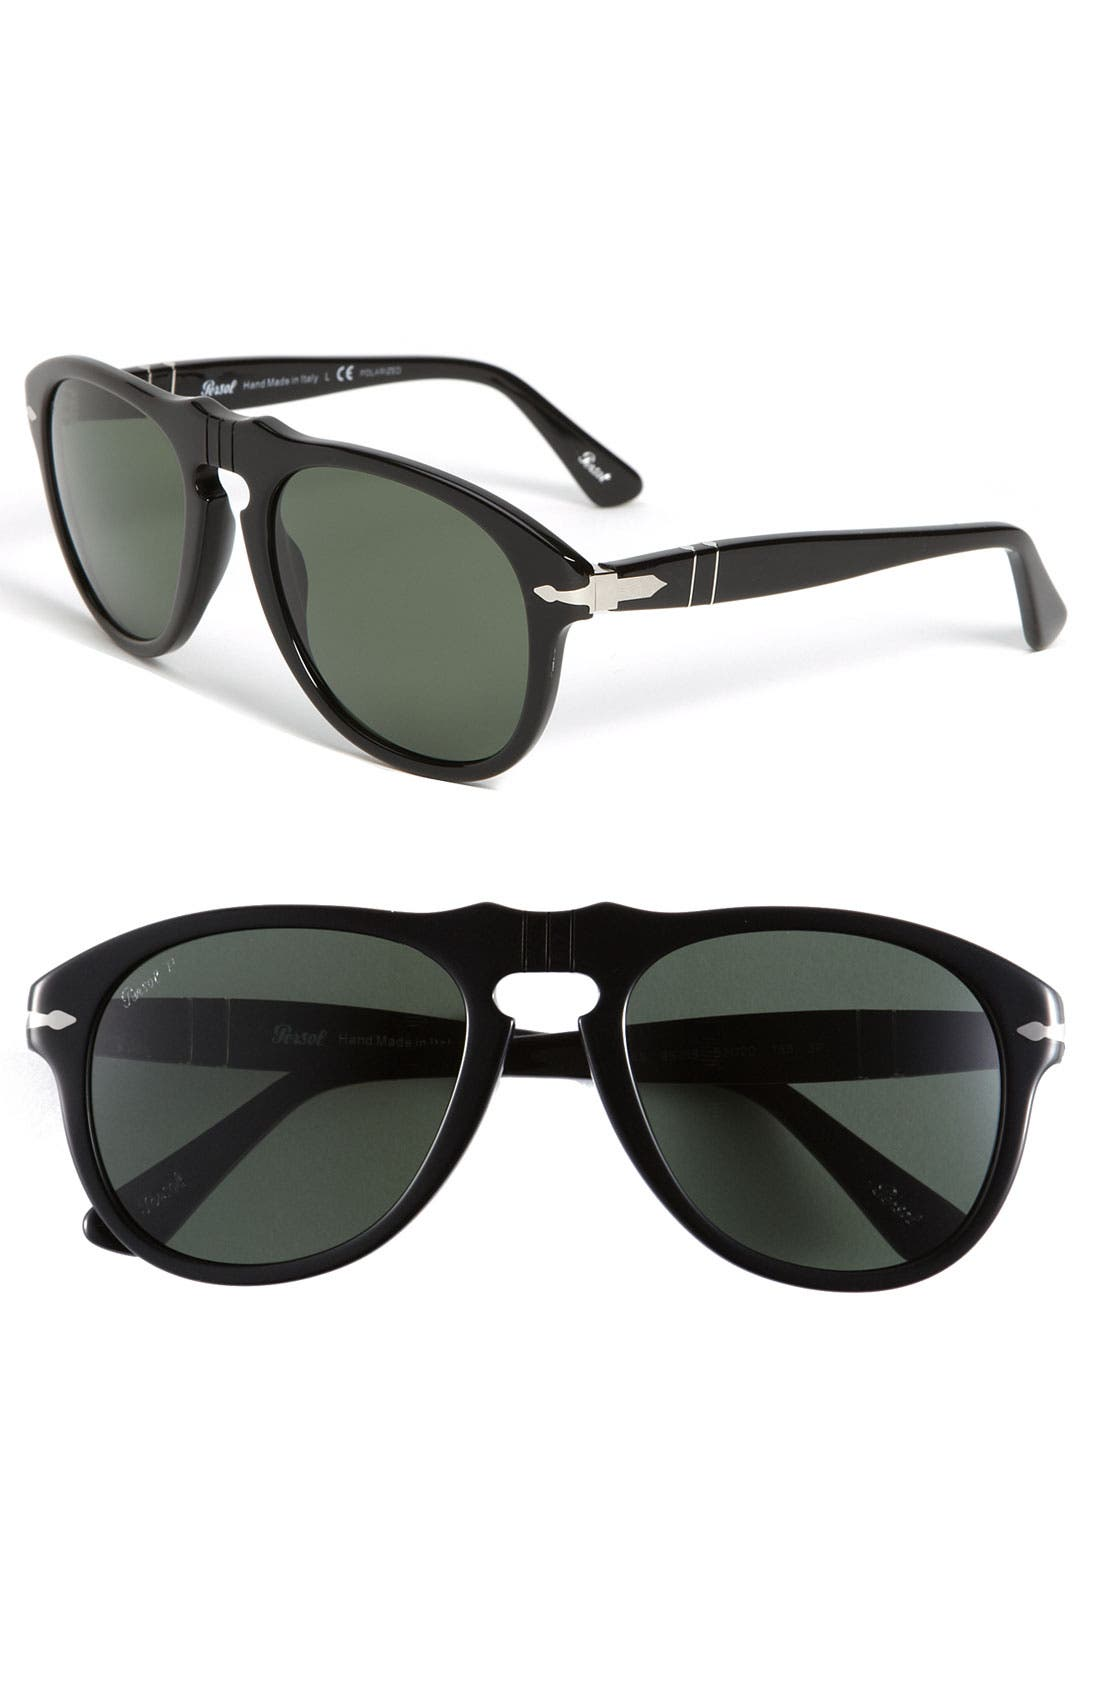 Alternate Image 1 Selected - Persol 54mm Polarized Keyhole Retro Sunglasses